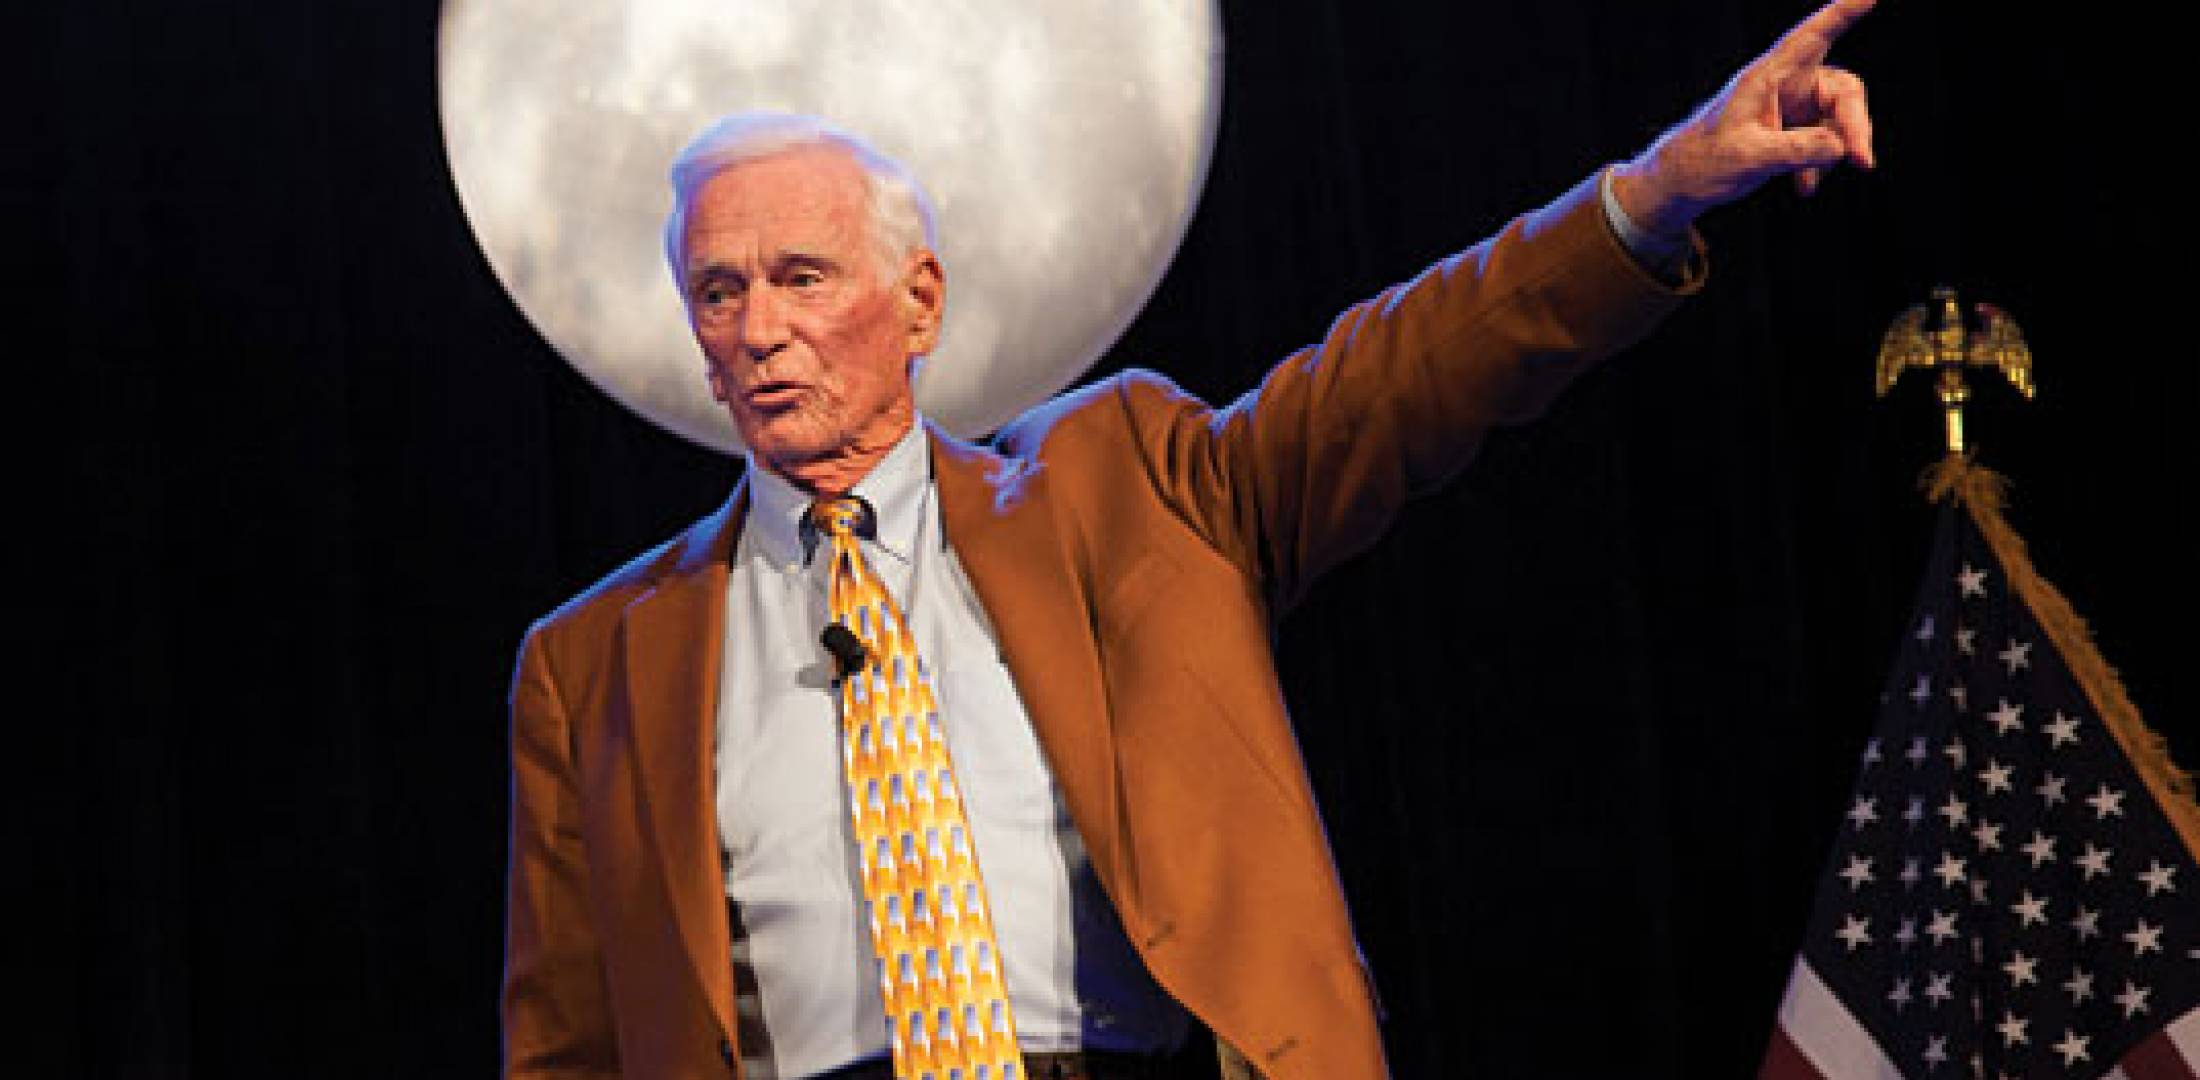 Gene Cernan, the last man on the Moon.